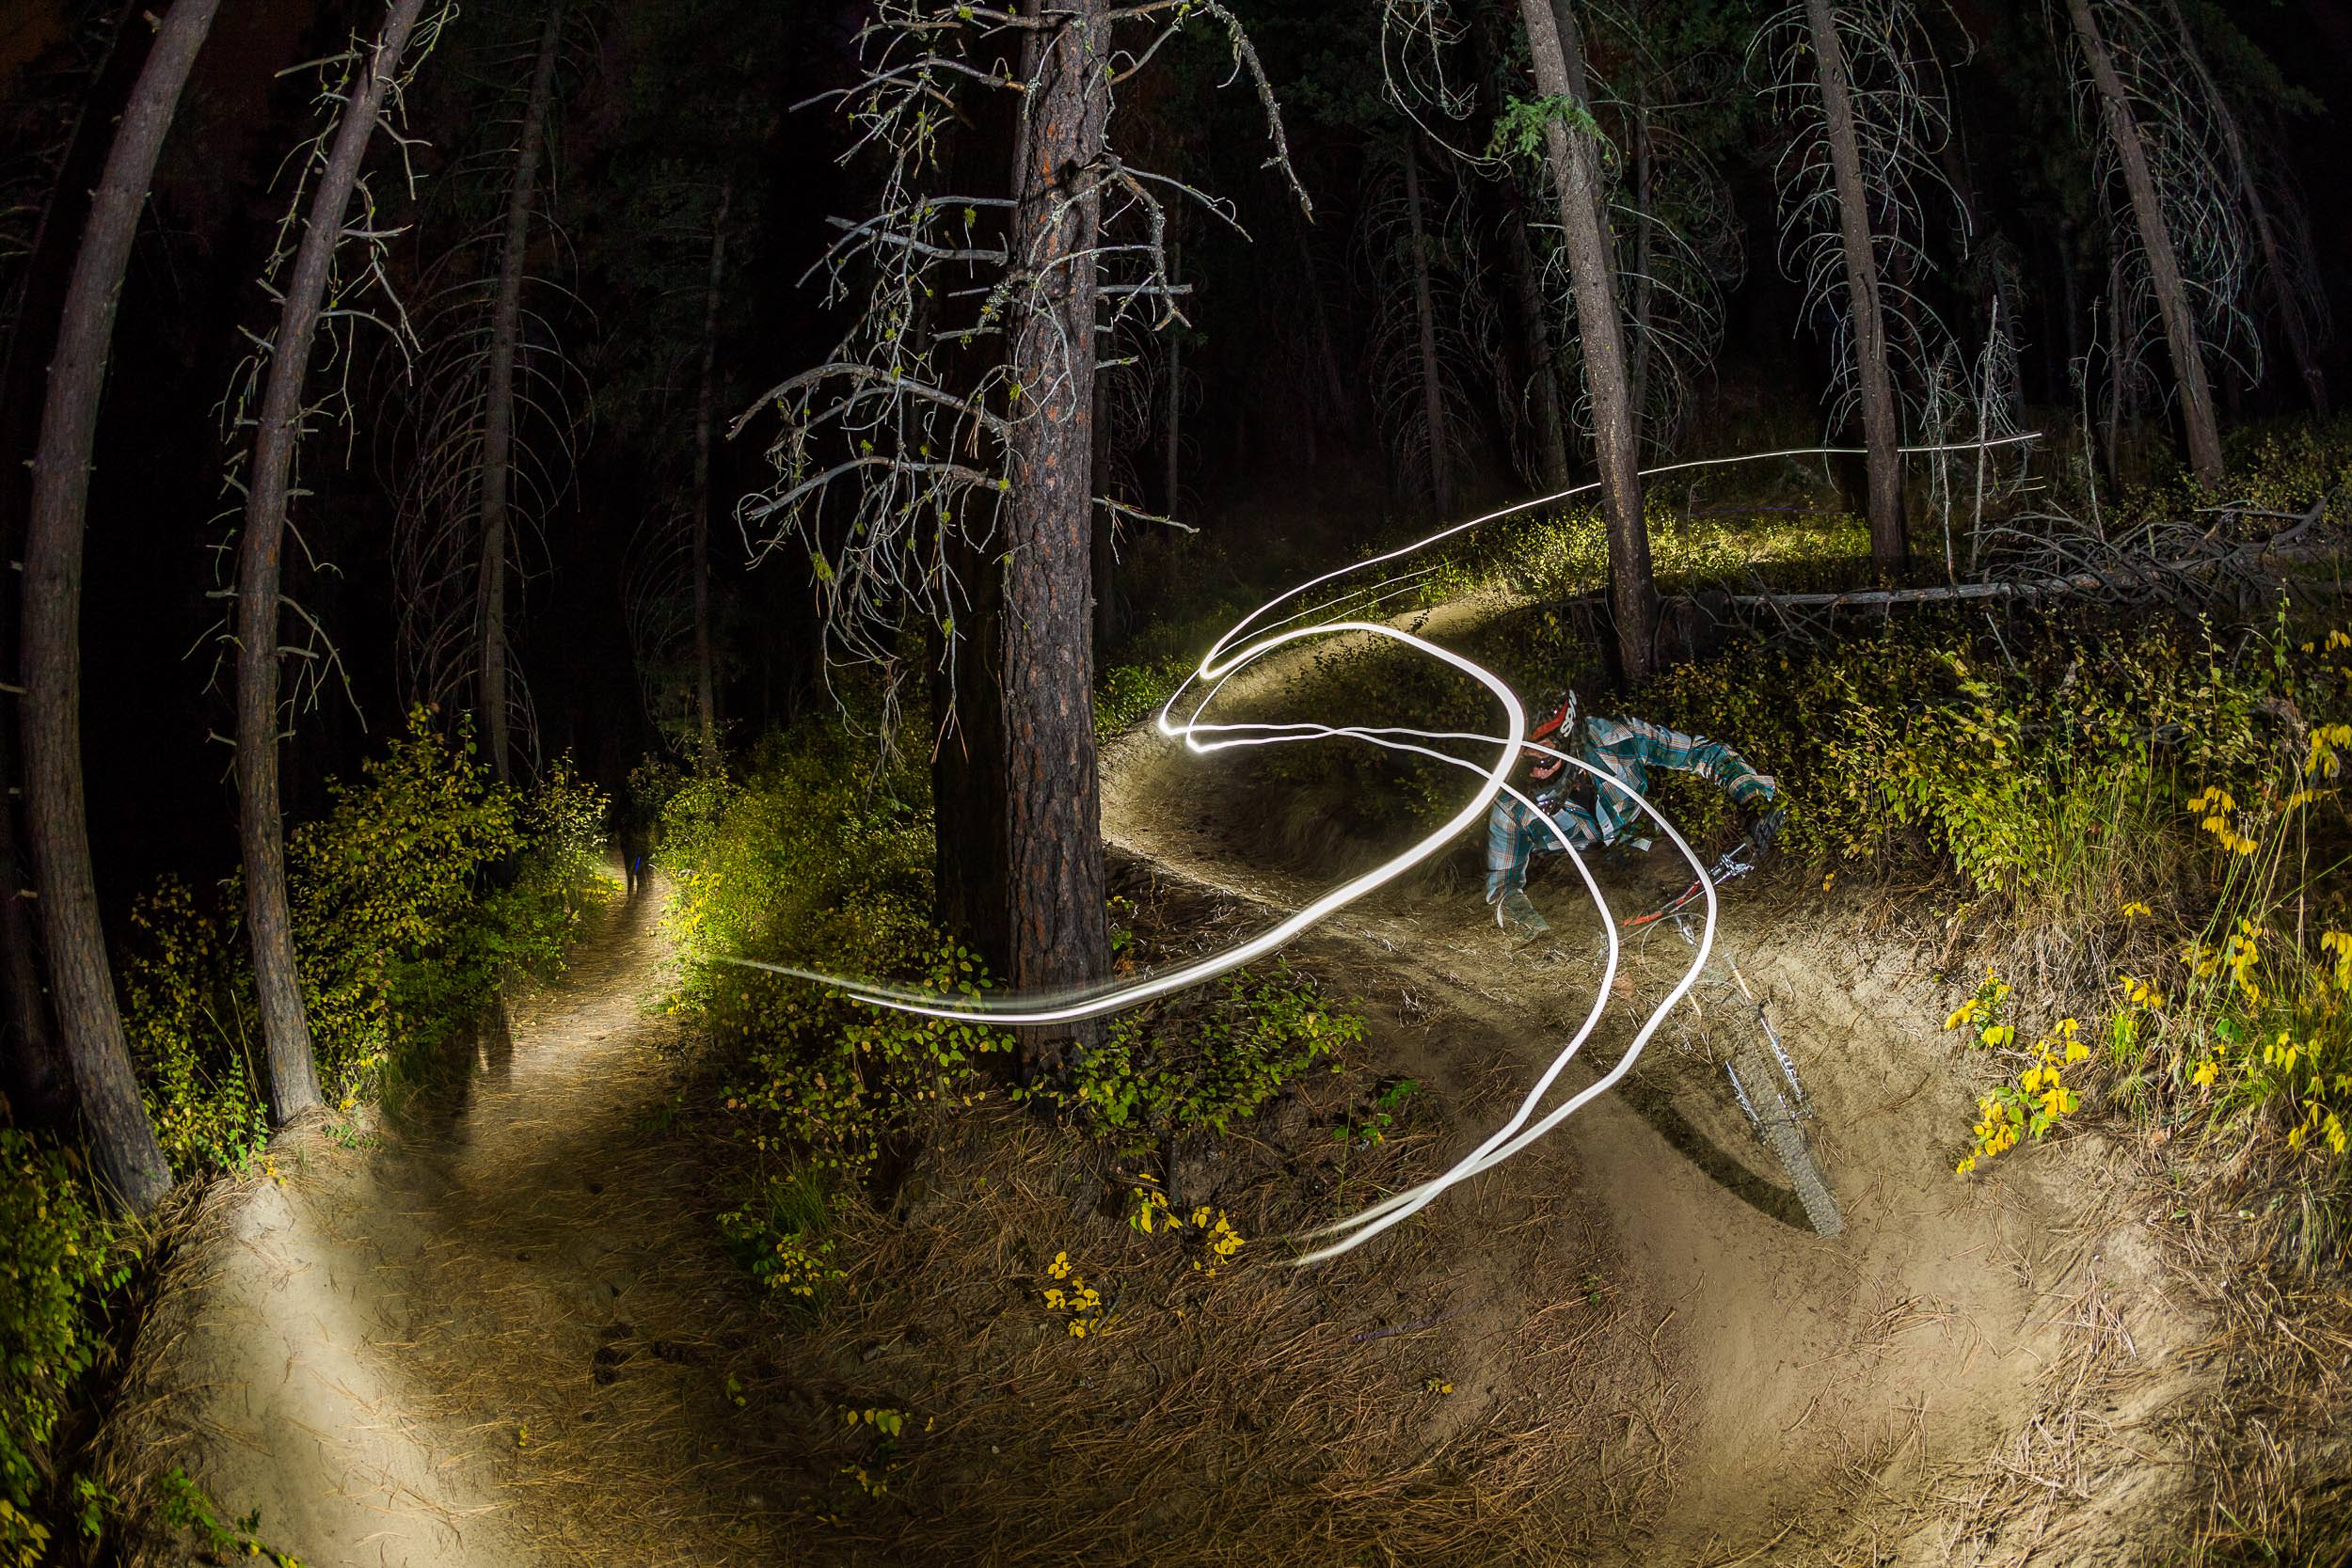 Rex Flake riding single track after dark for the Leavenworth Mountain Association